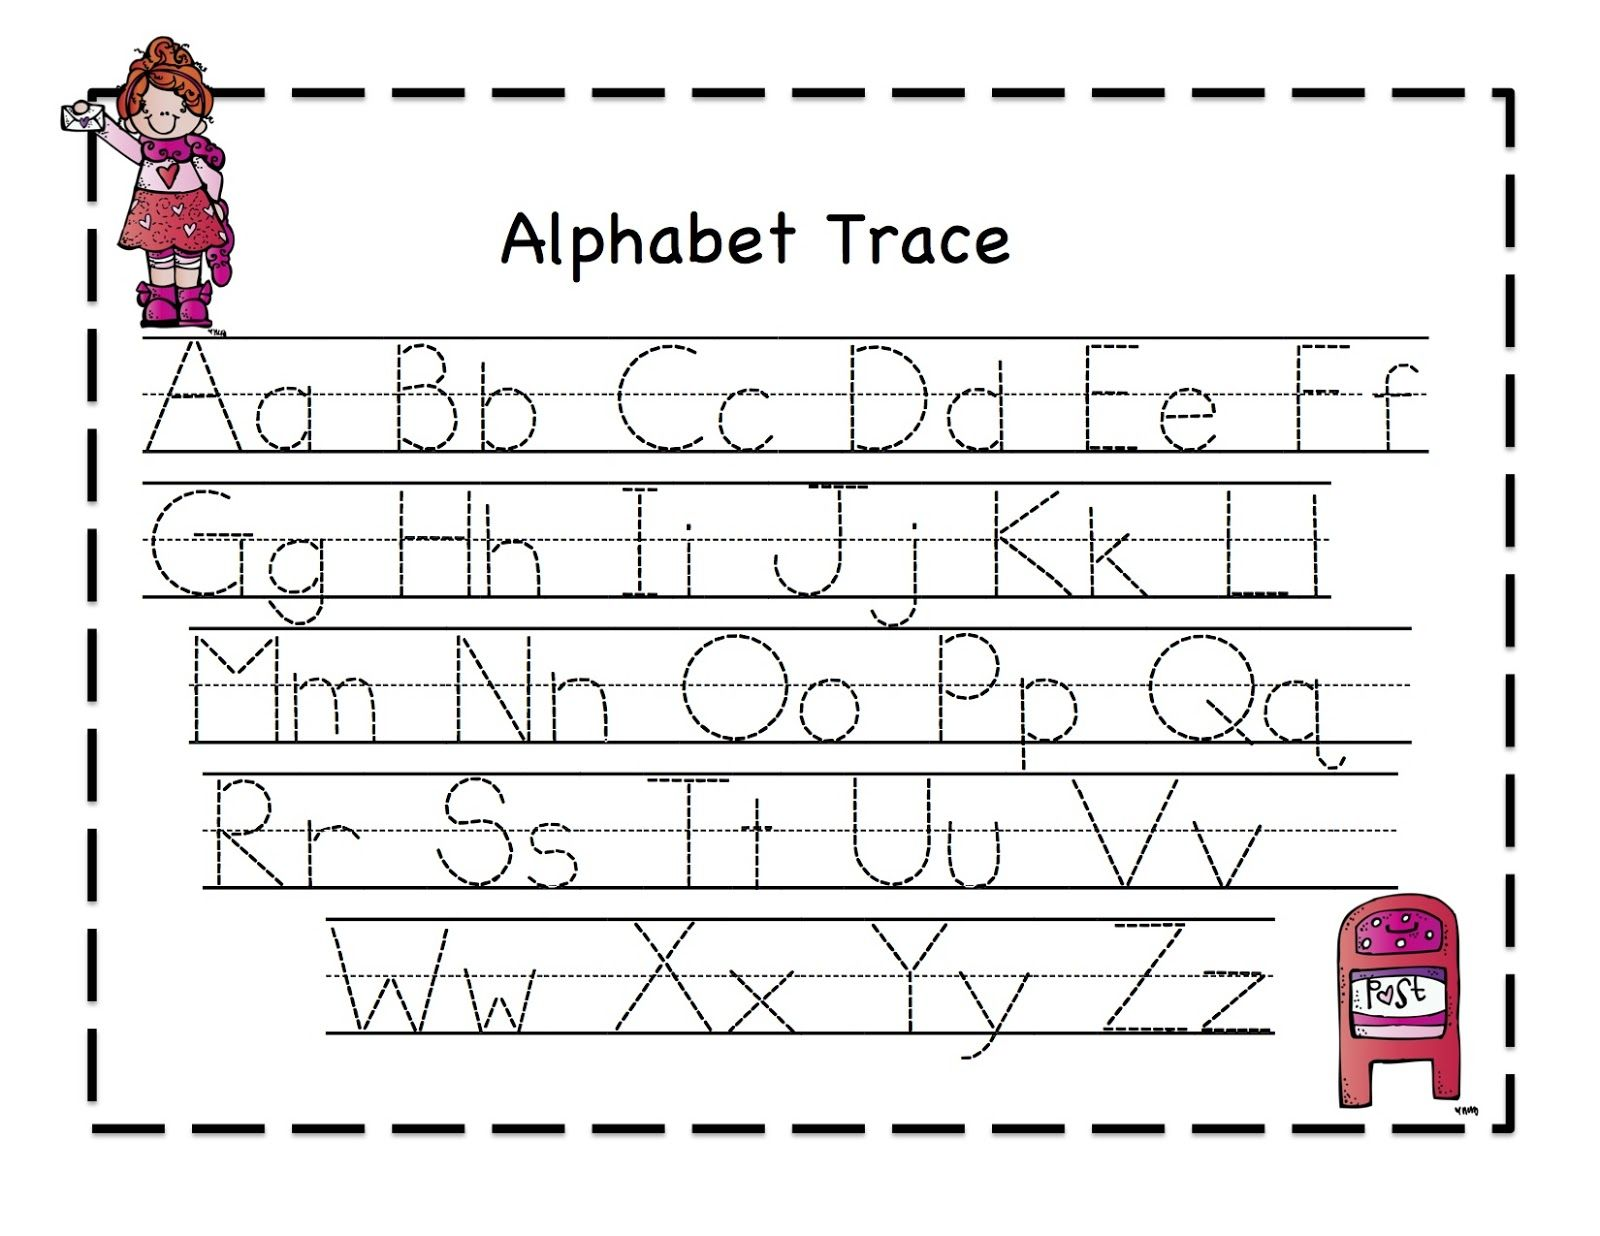 worksheet Free Alphabet Tracing Worksheets abc tracing sheets for preschool kids kiddo shelter alphabet extent fun learning with worksheets loving printable smart eworksheet